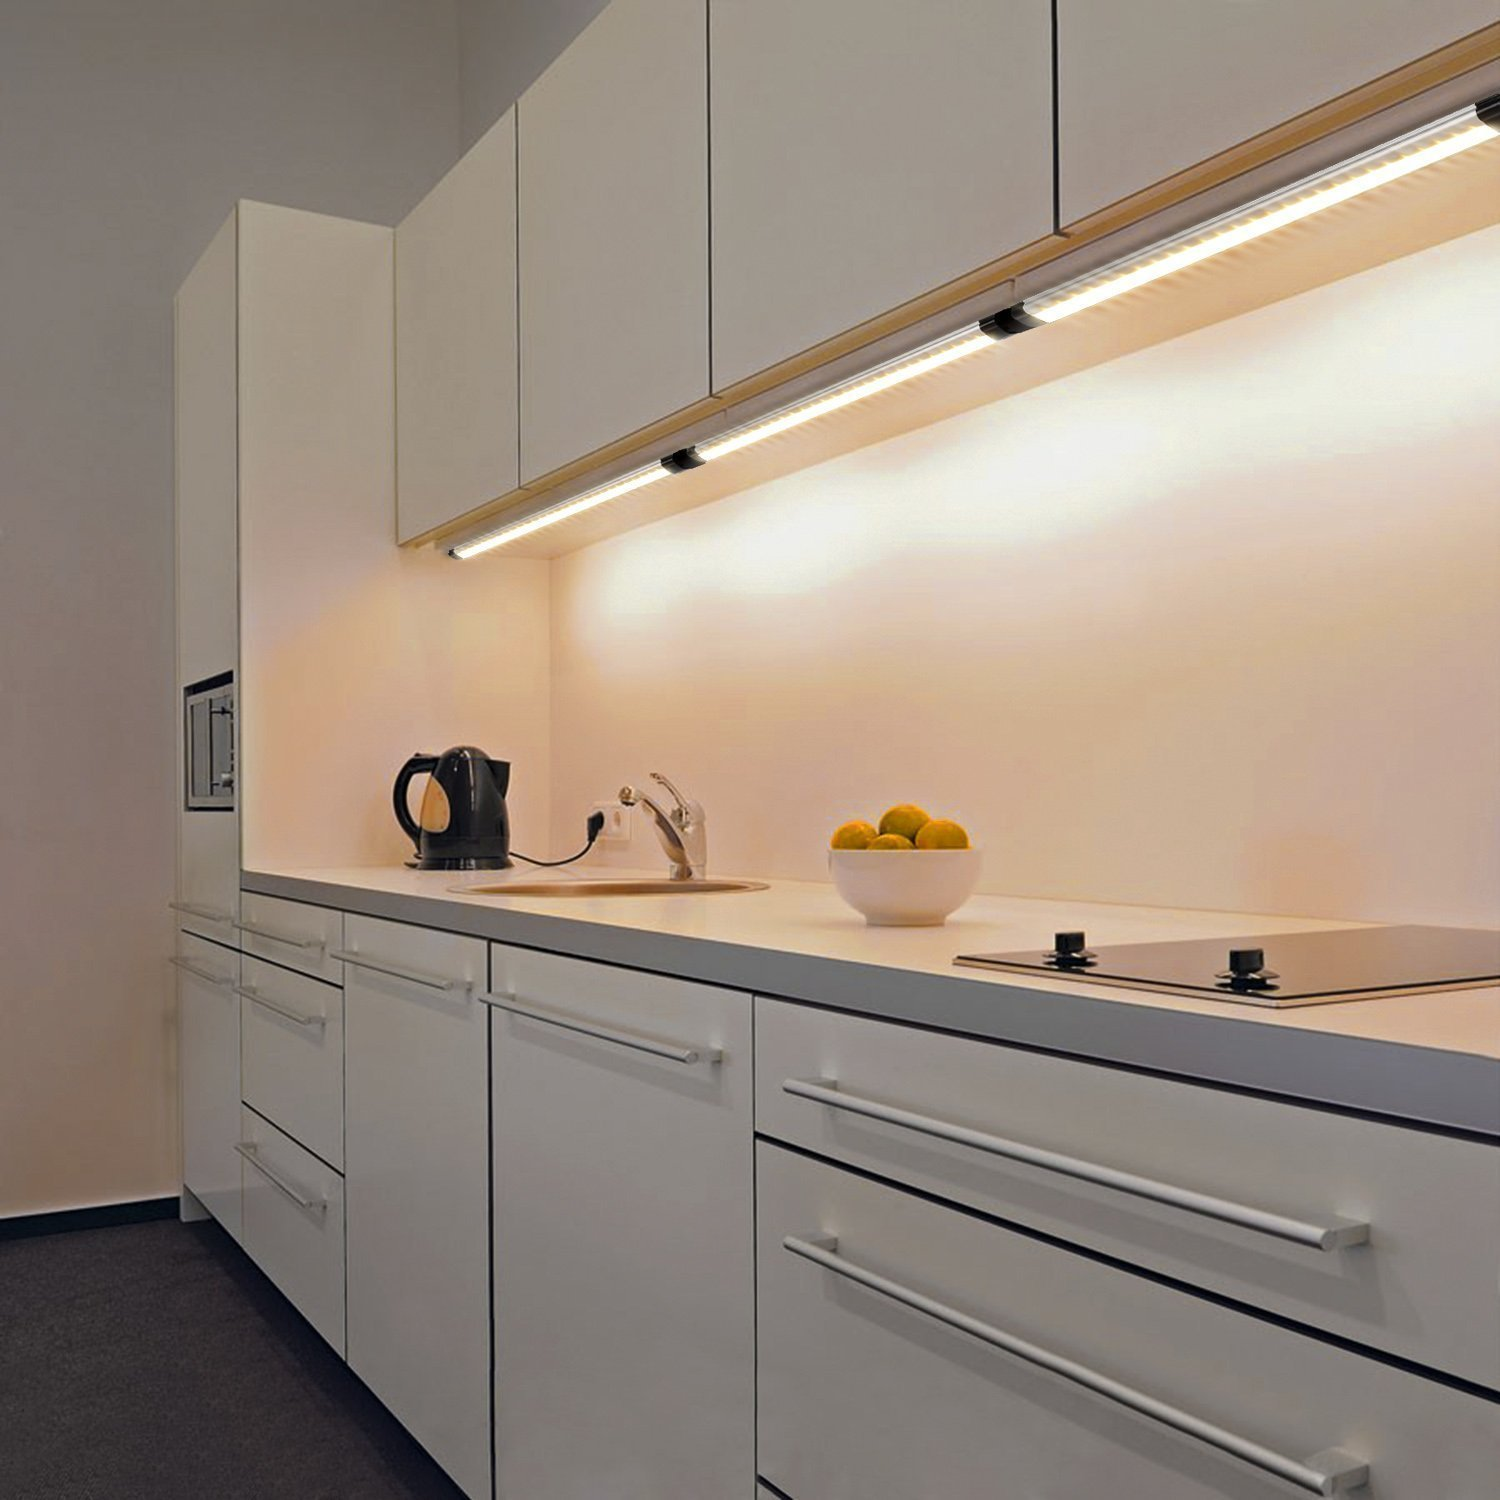 Lights For Kitchen Cabinets Dimmable Under Cabinet Lightning